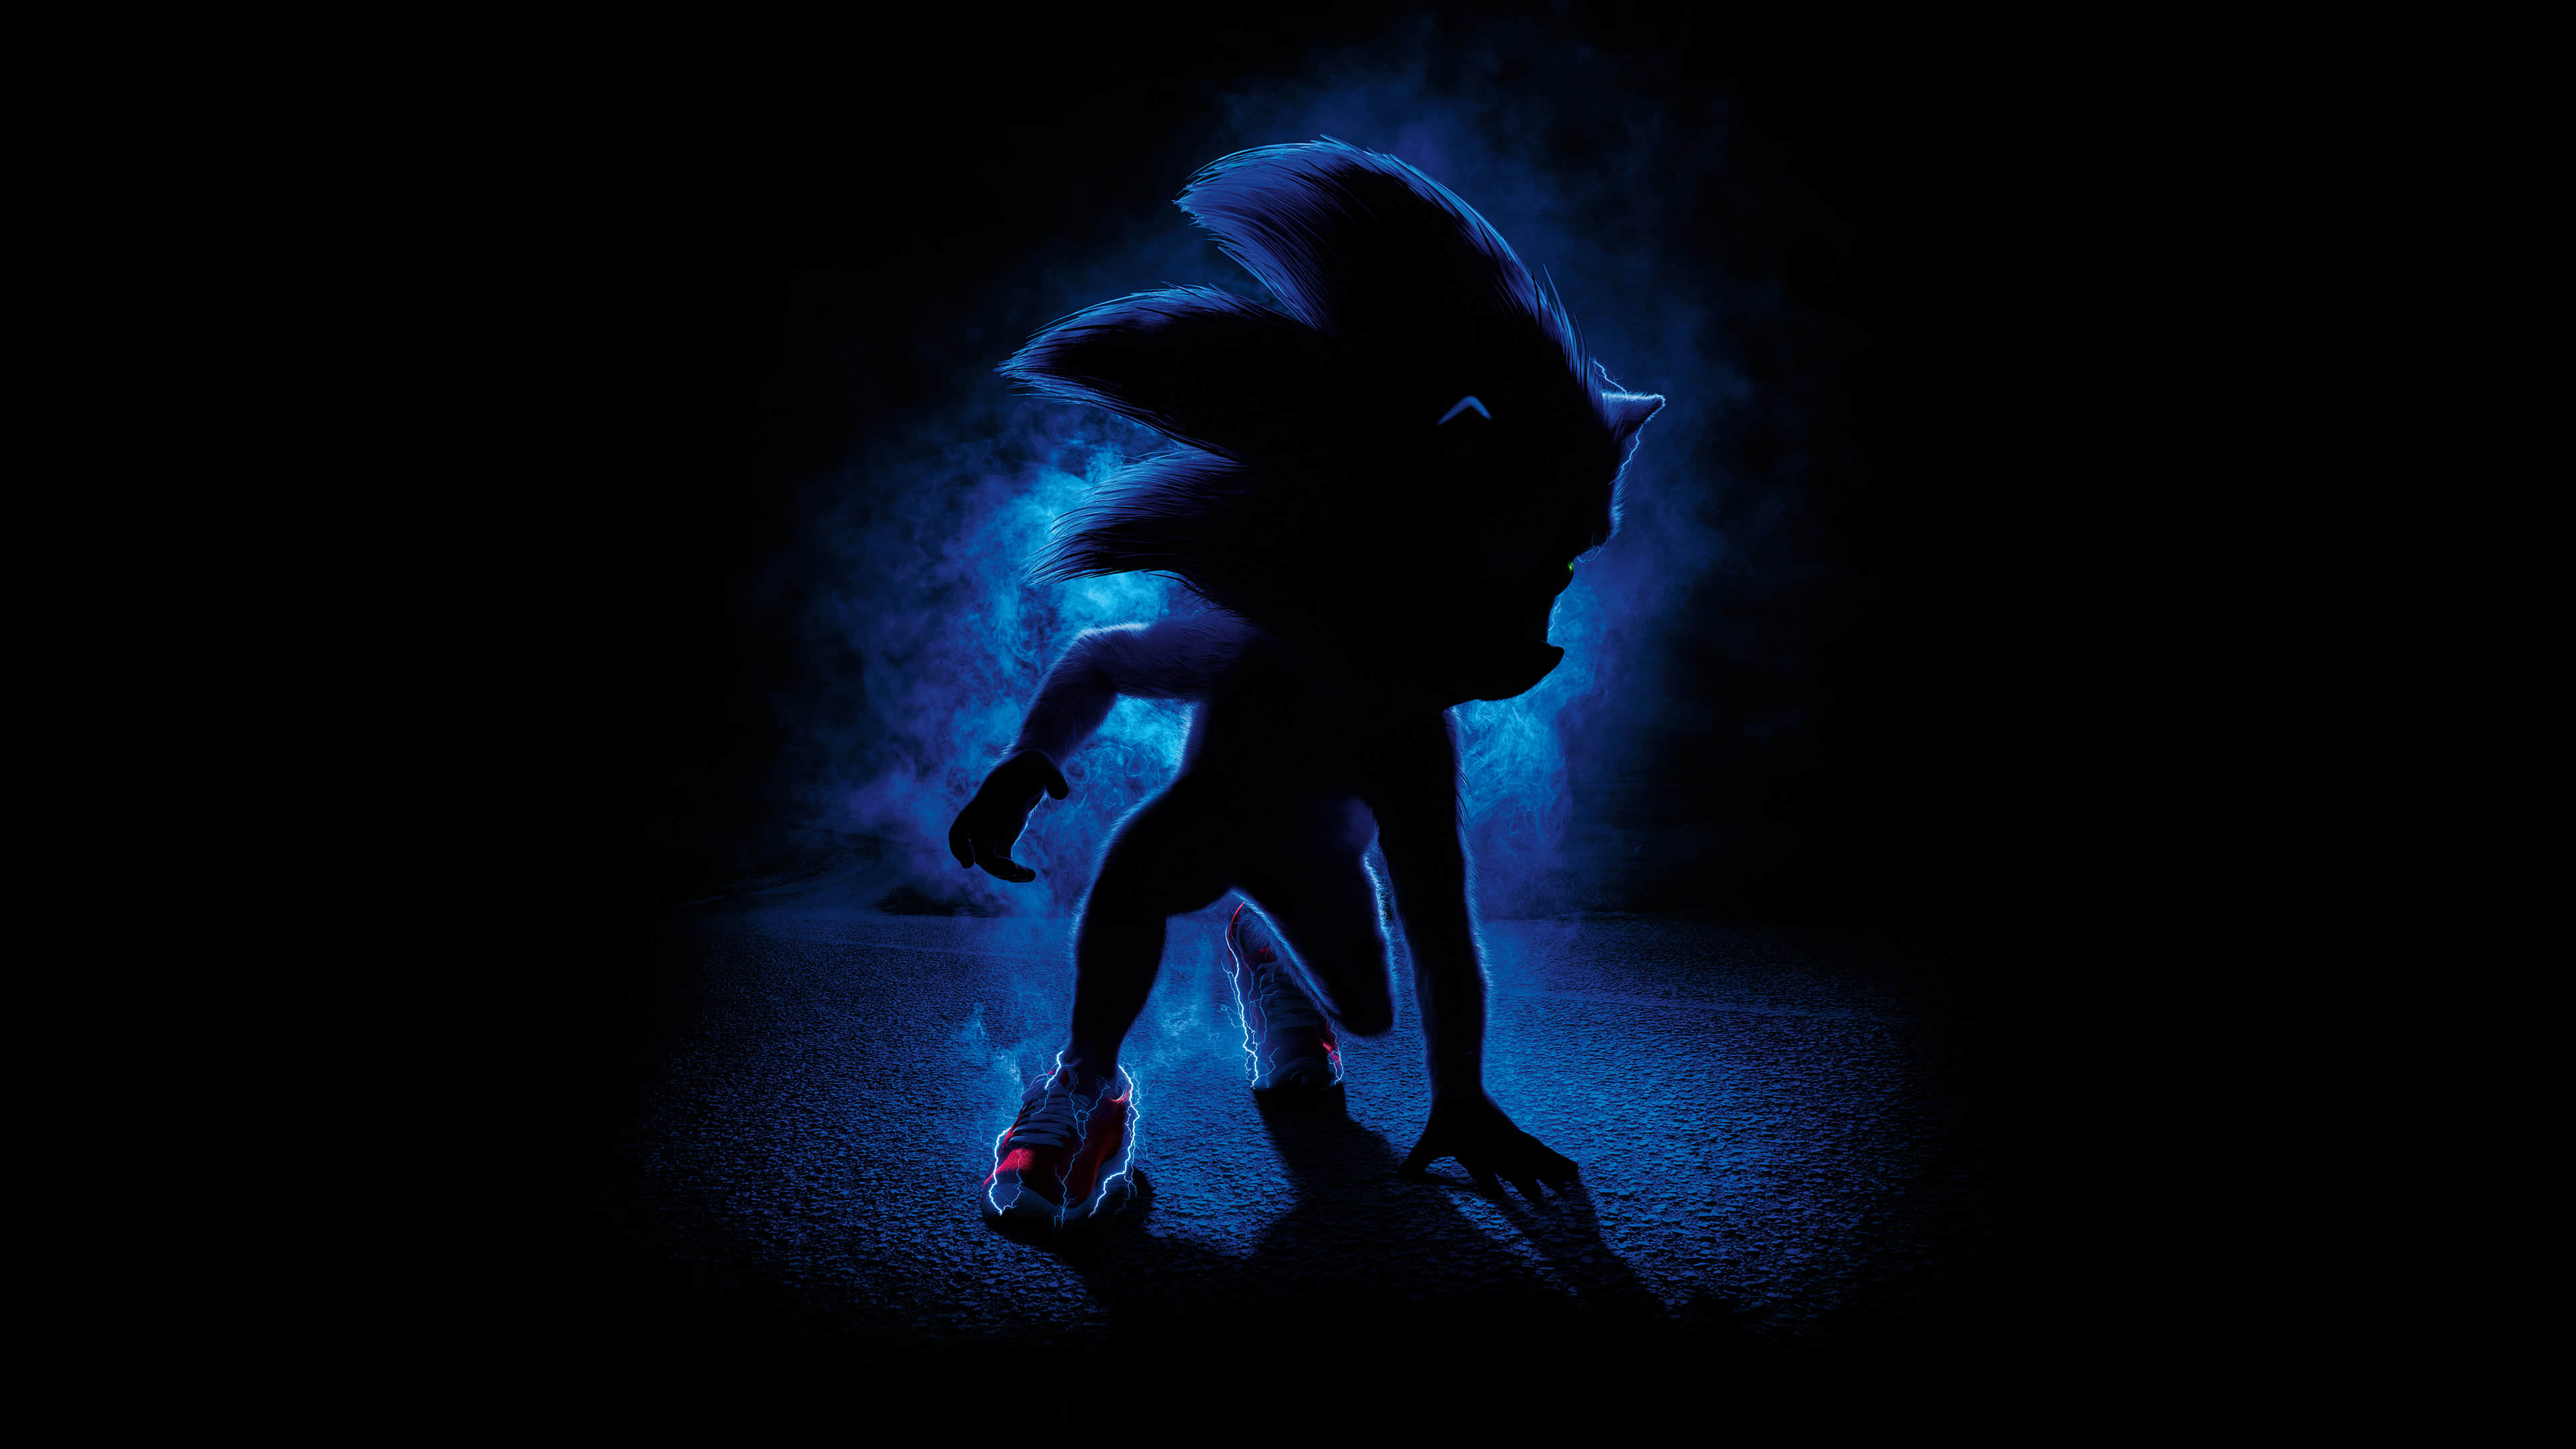 sonic the hedgehog movie uhd 4k wallpaper